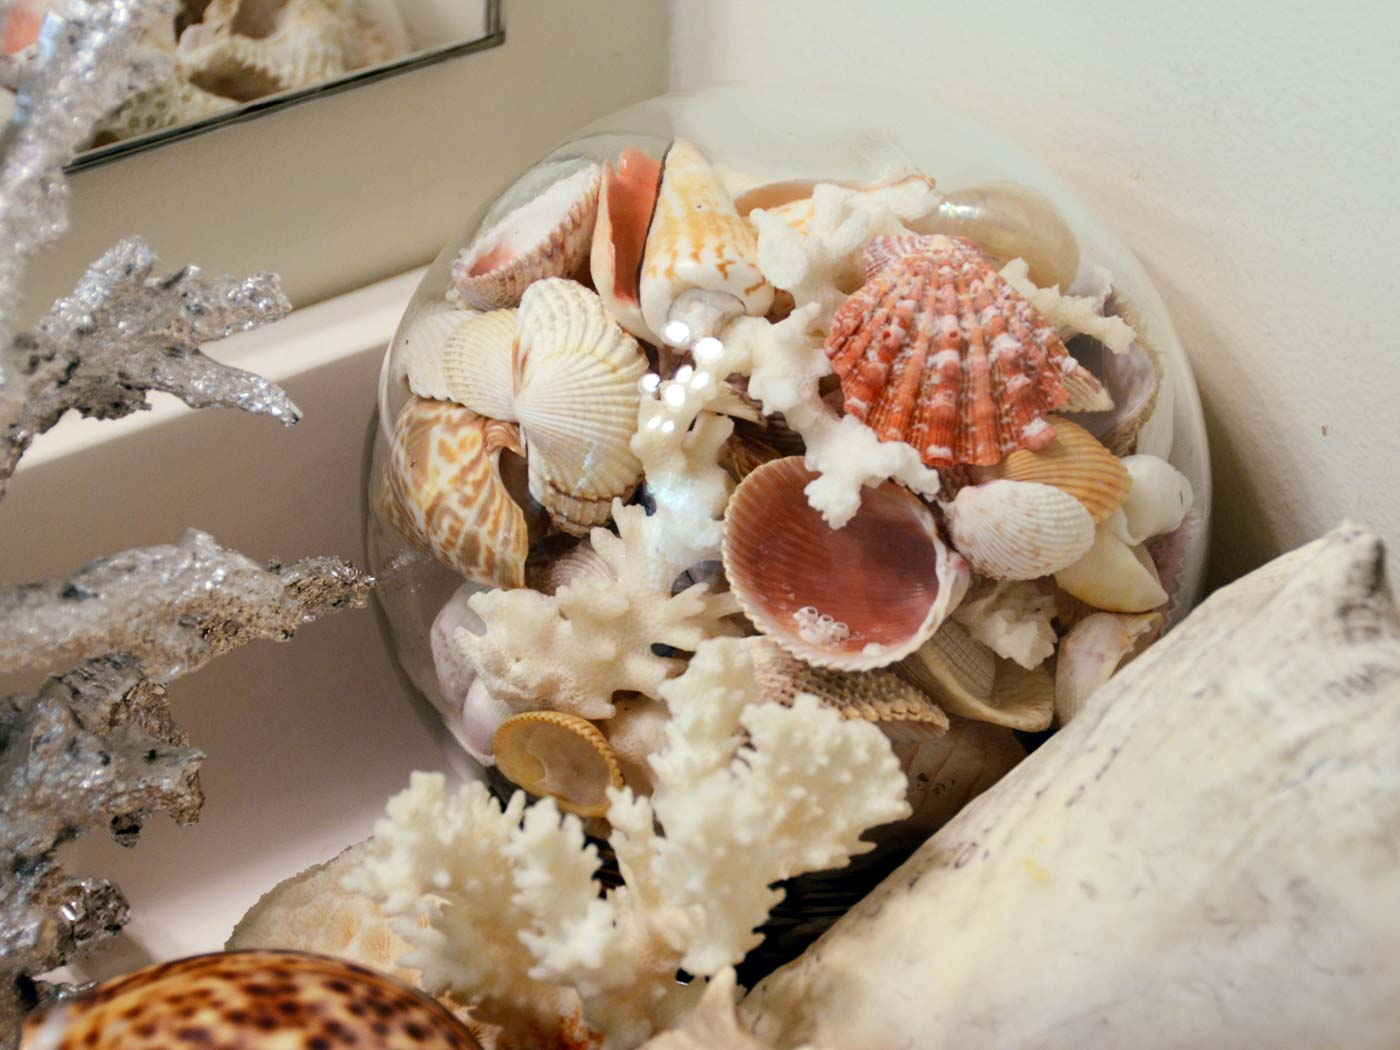 Sea shells vignette with glass globe